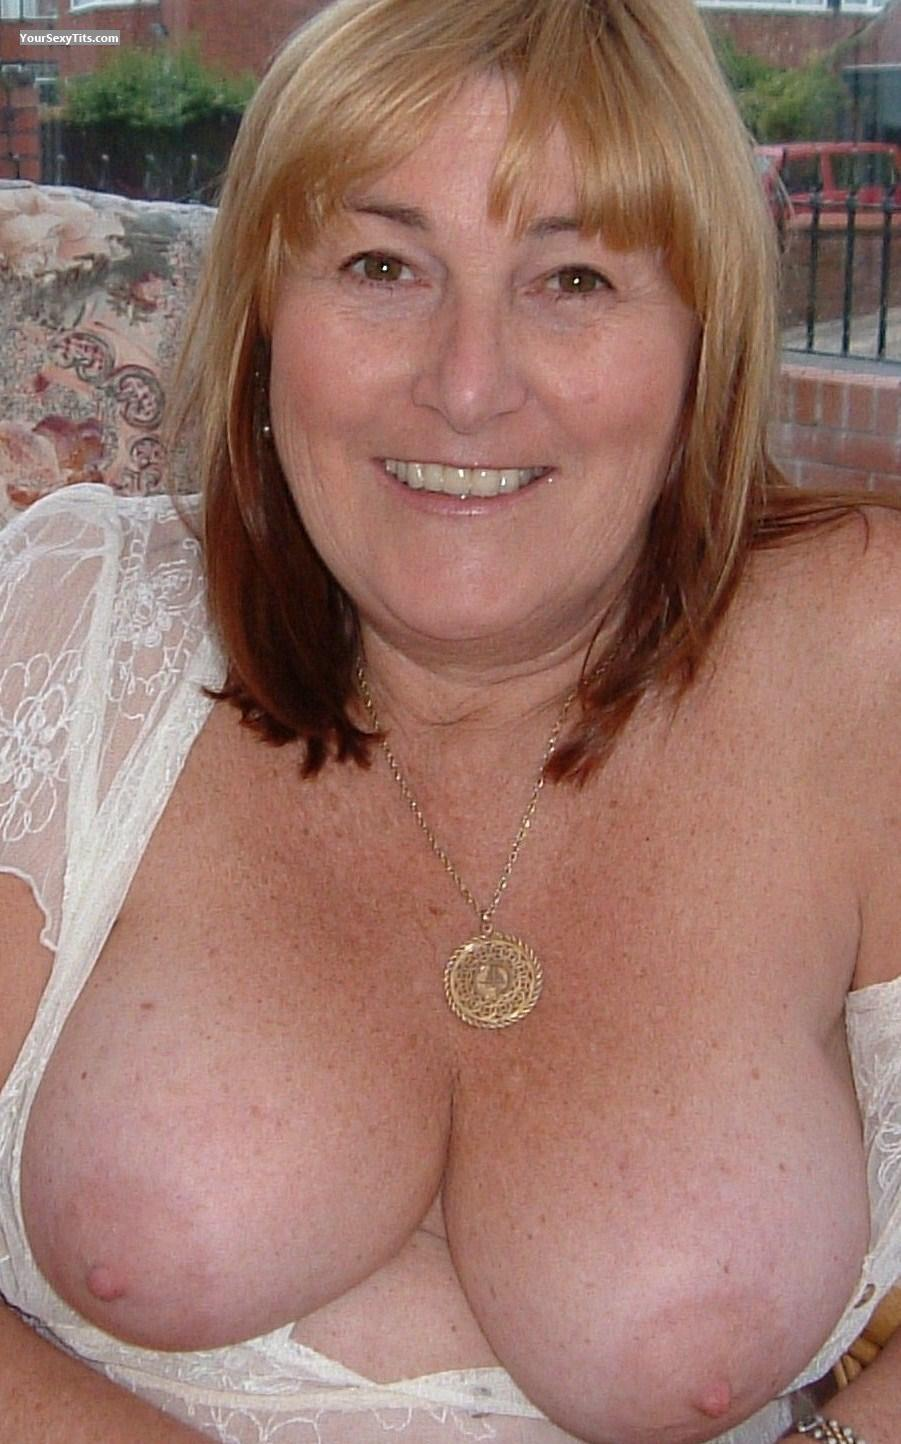 Tit Flash: Medium Tits - Topless M from United Kingdom